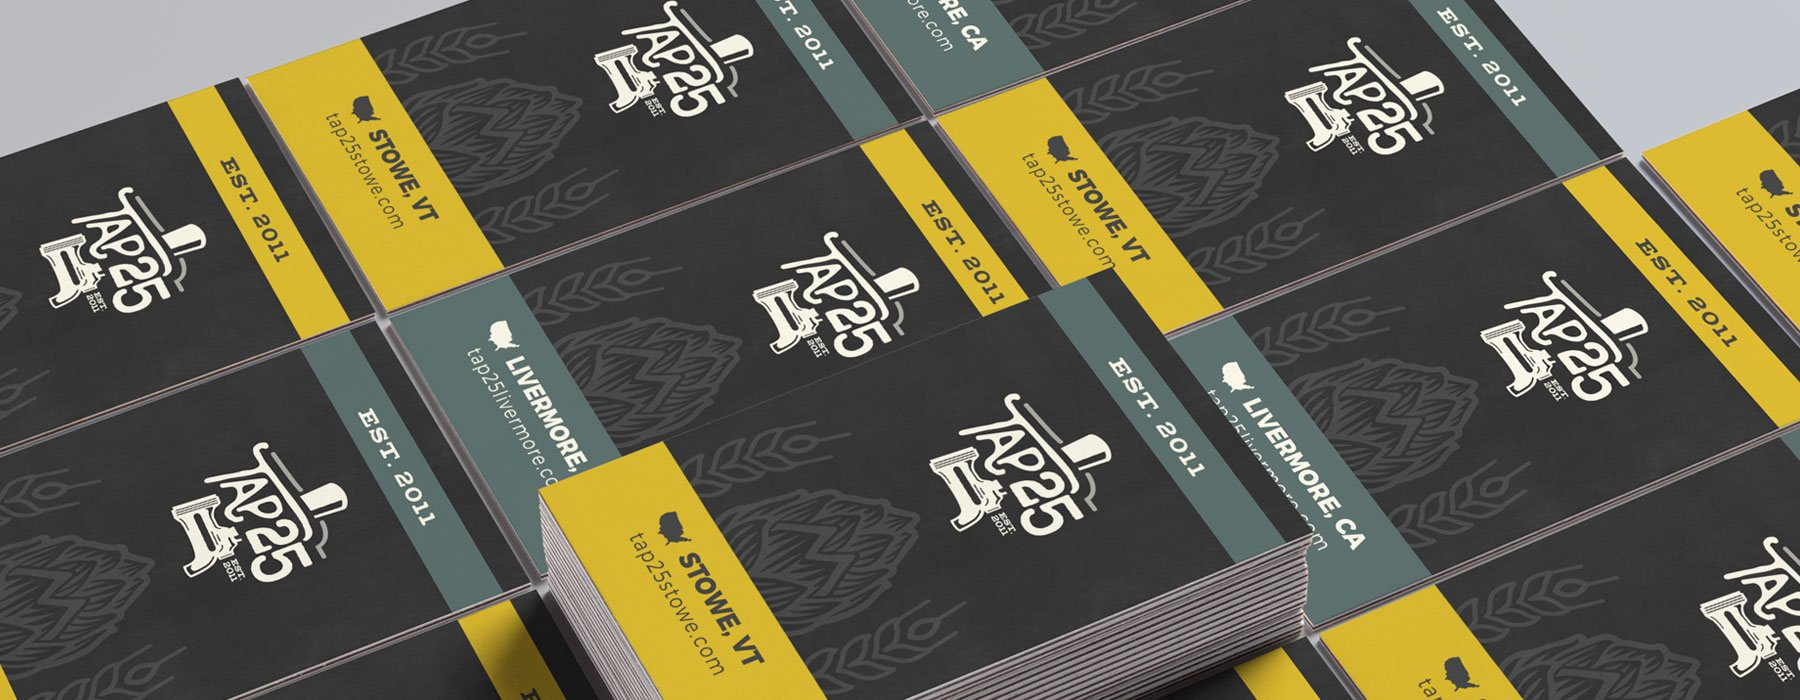 Tap 25 business cards